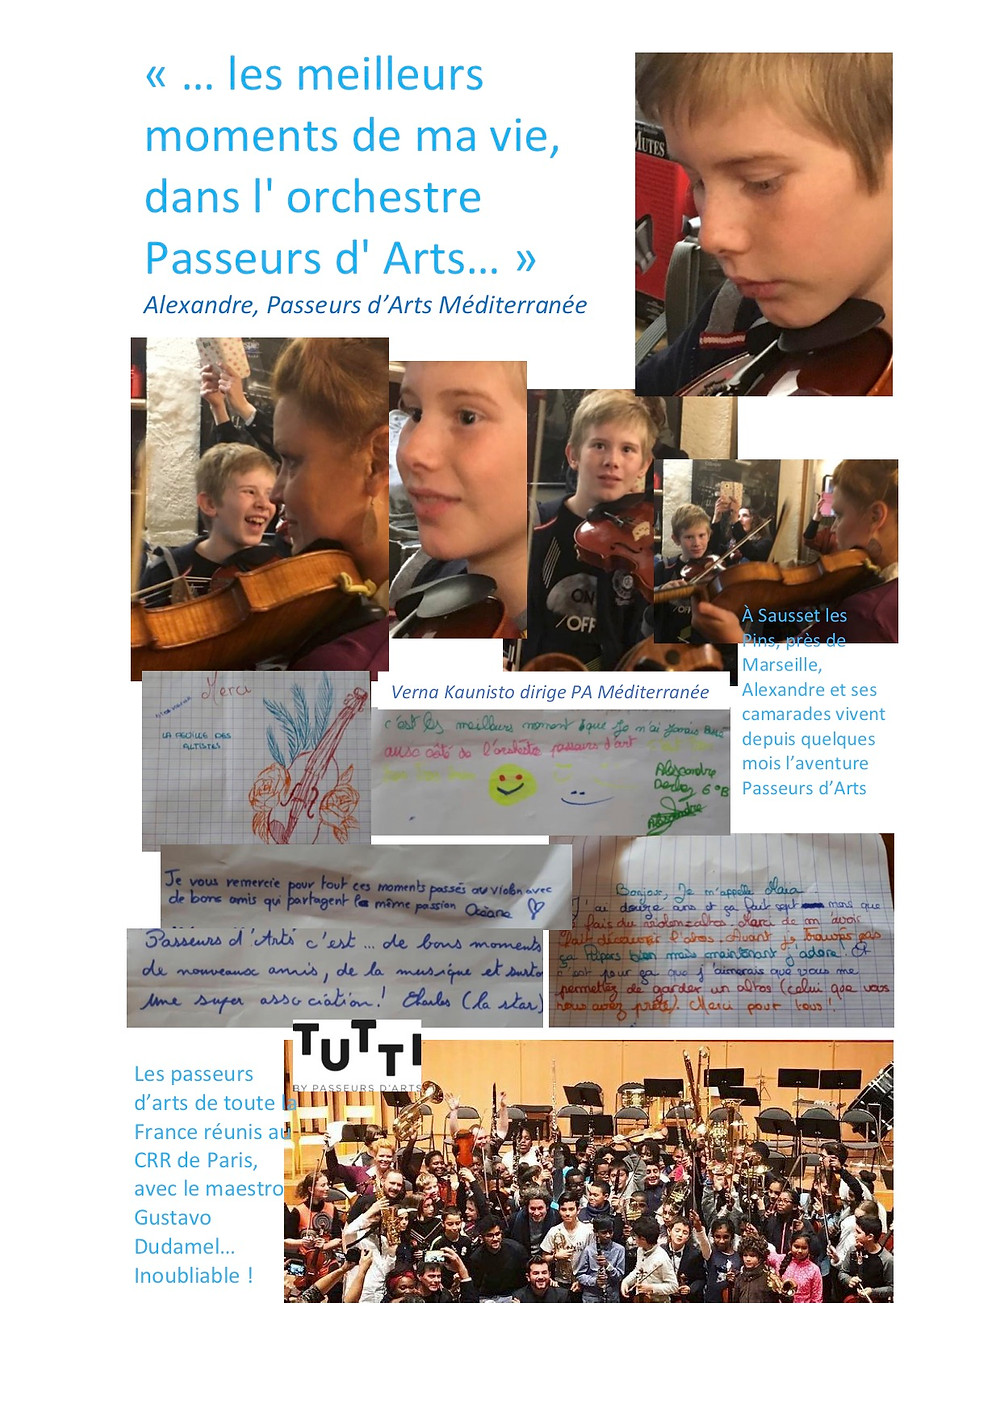 The best moments of my life in the orchestra